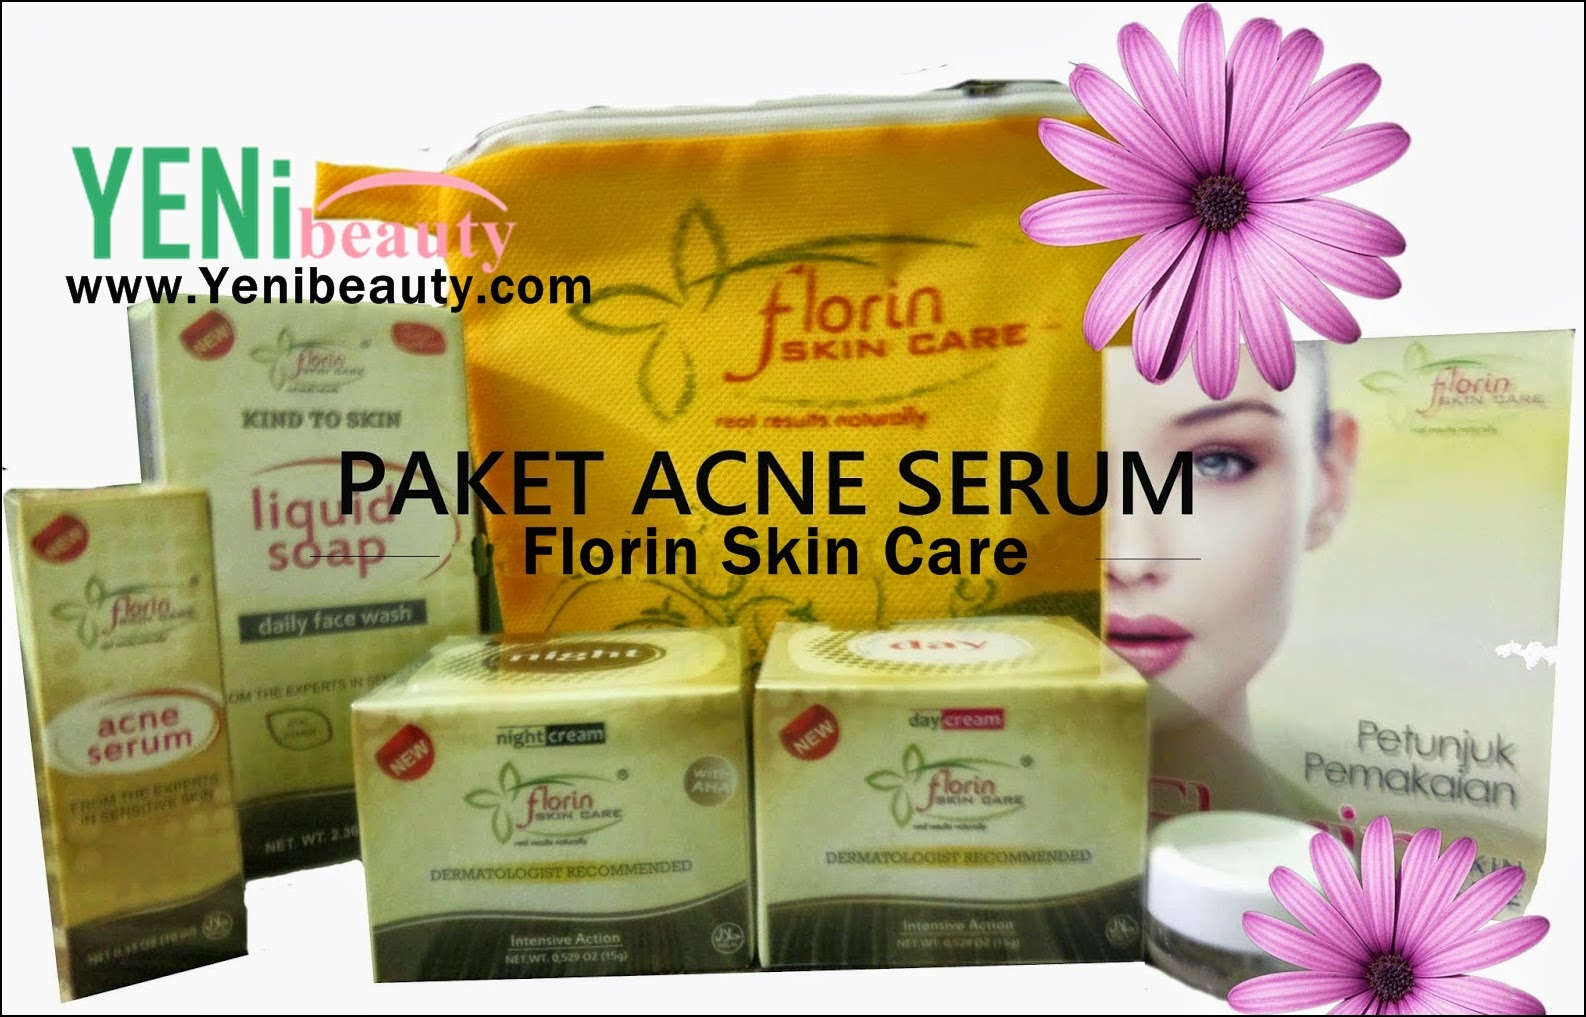 Florin skin care paket acne serum